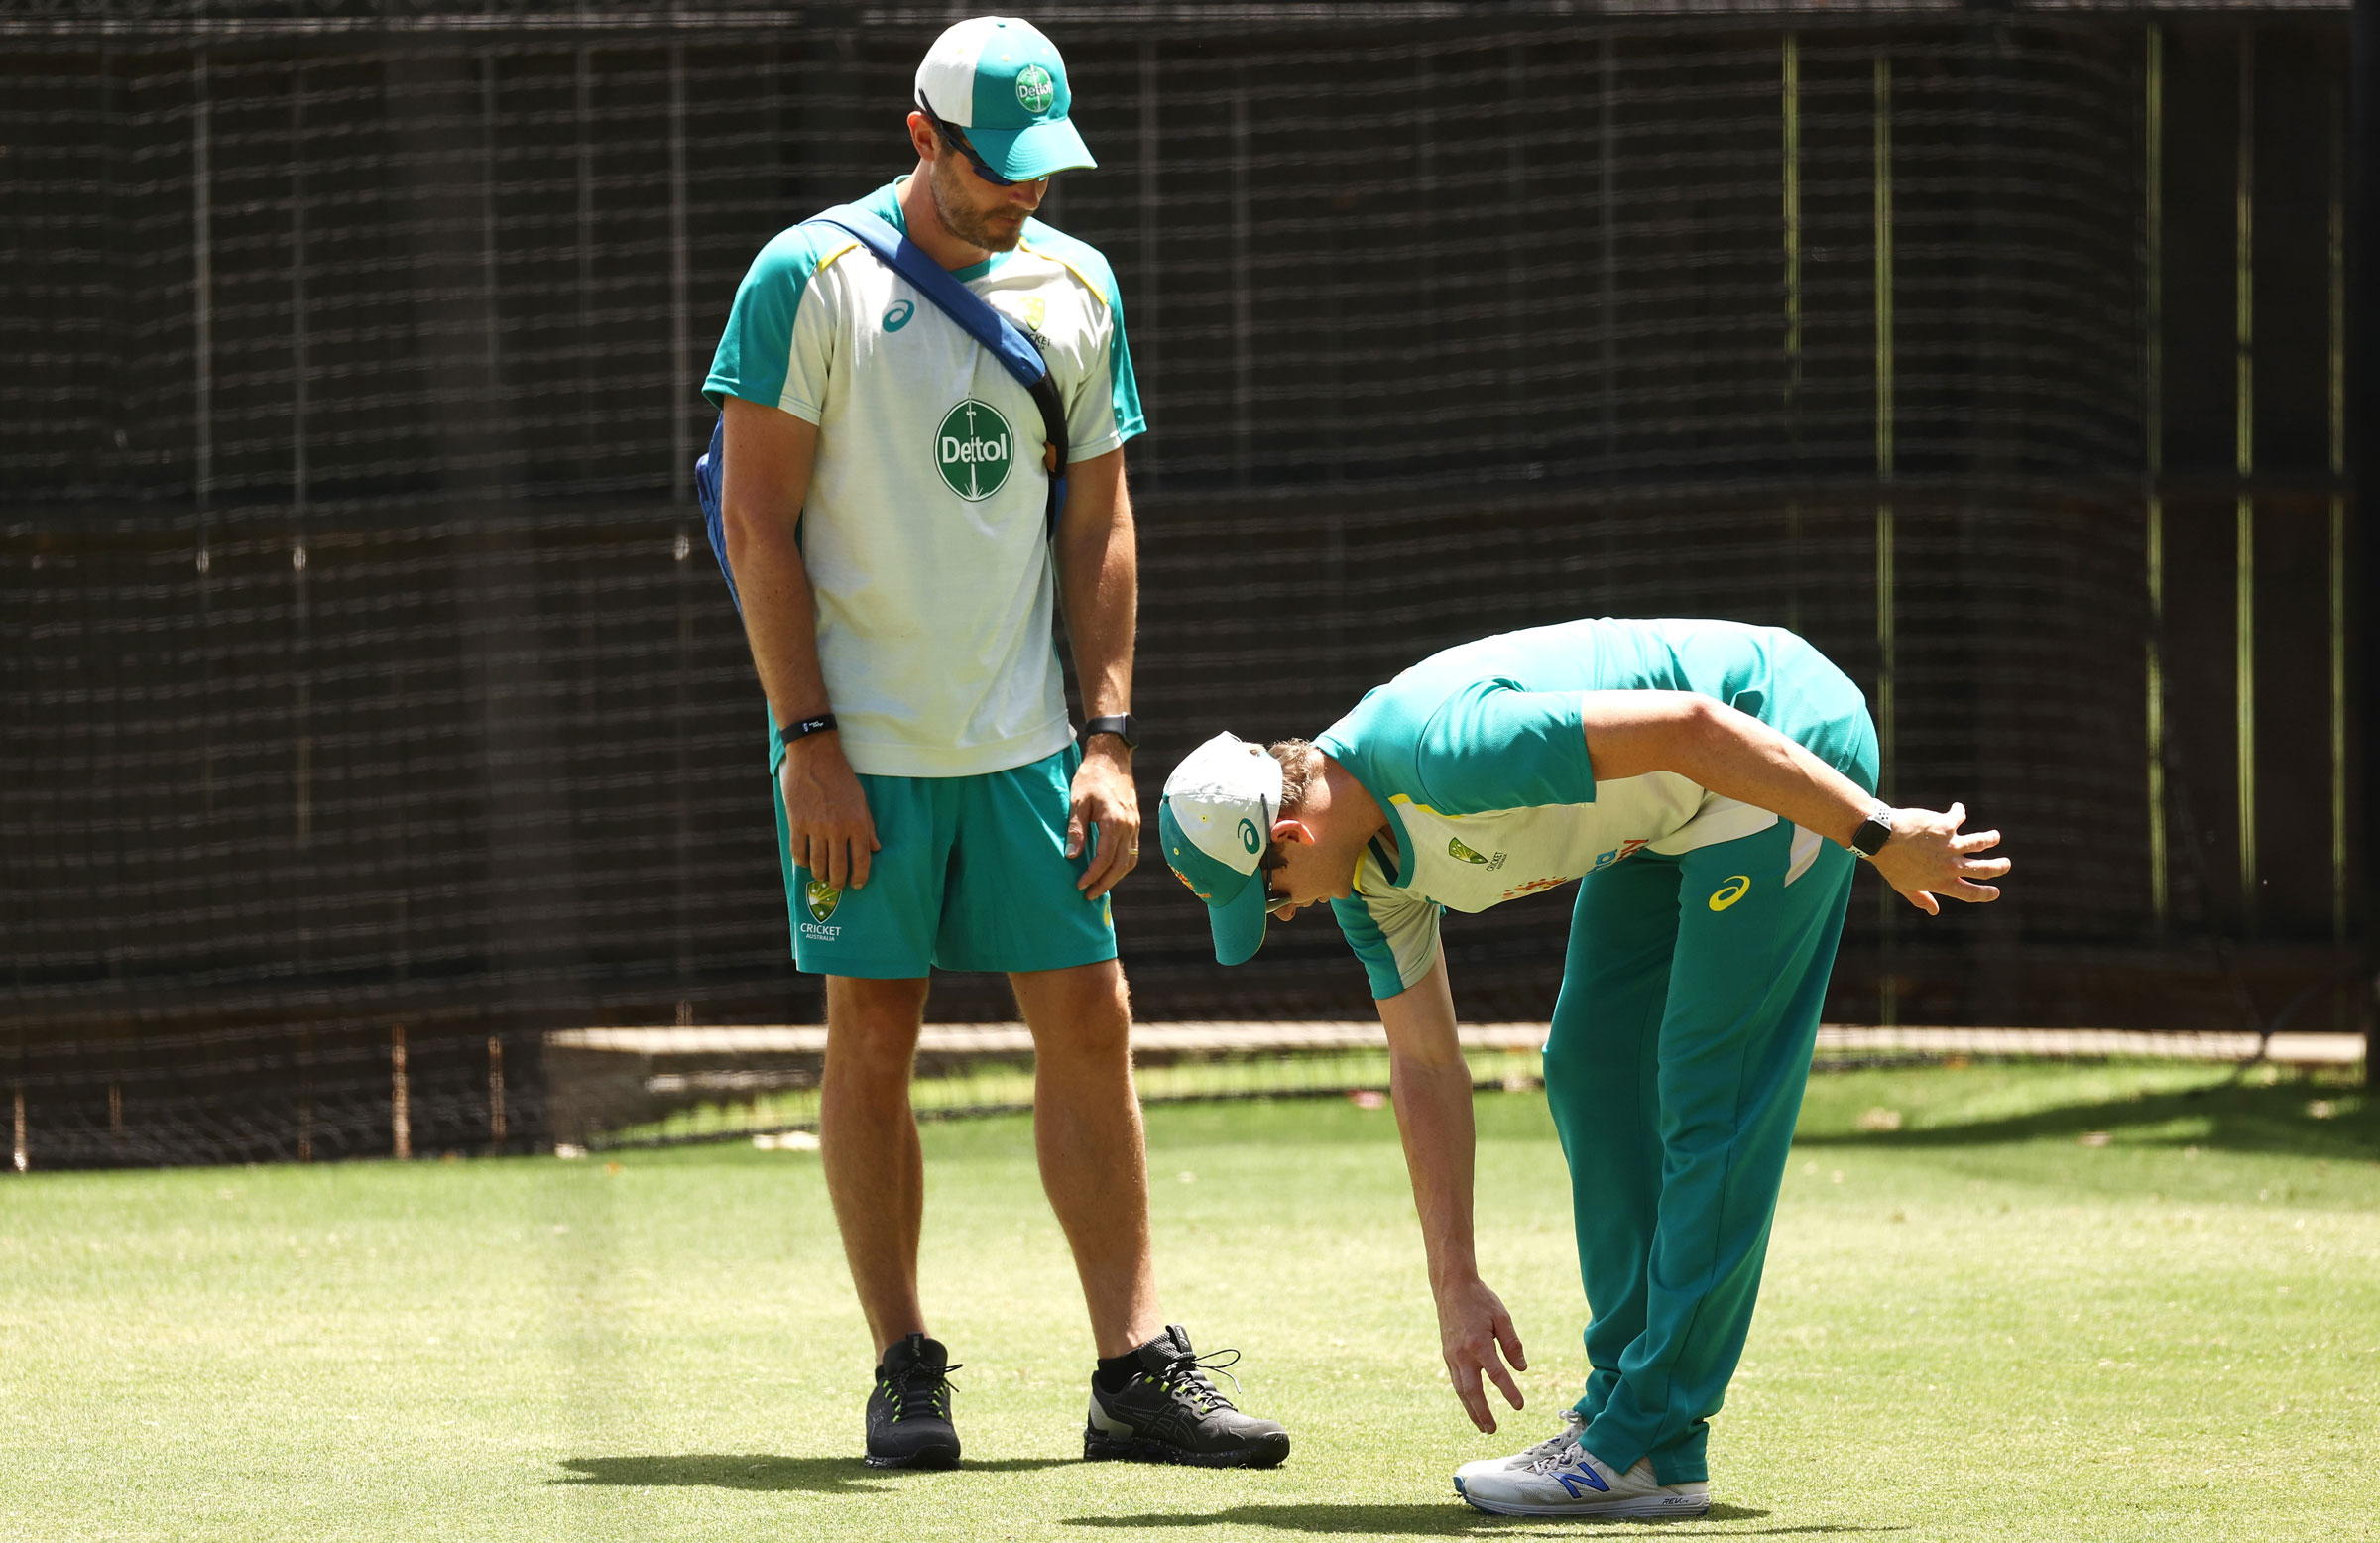 Smith stretches at training on Wednesday // Getty